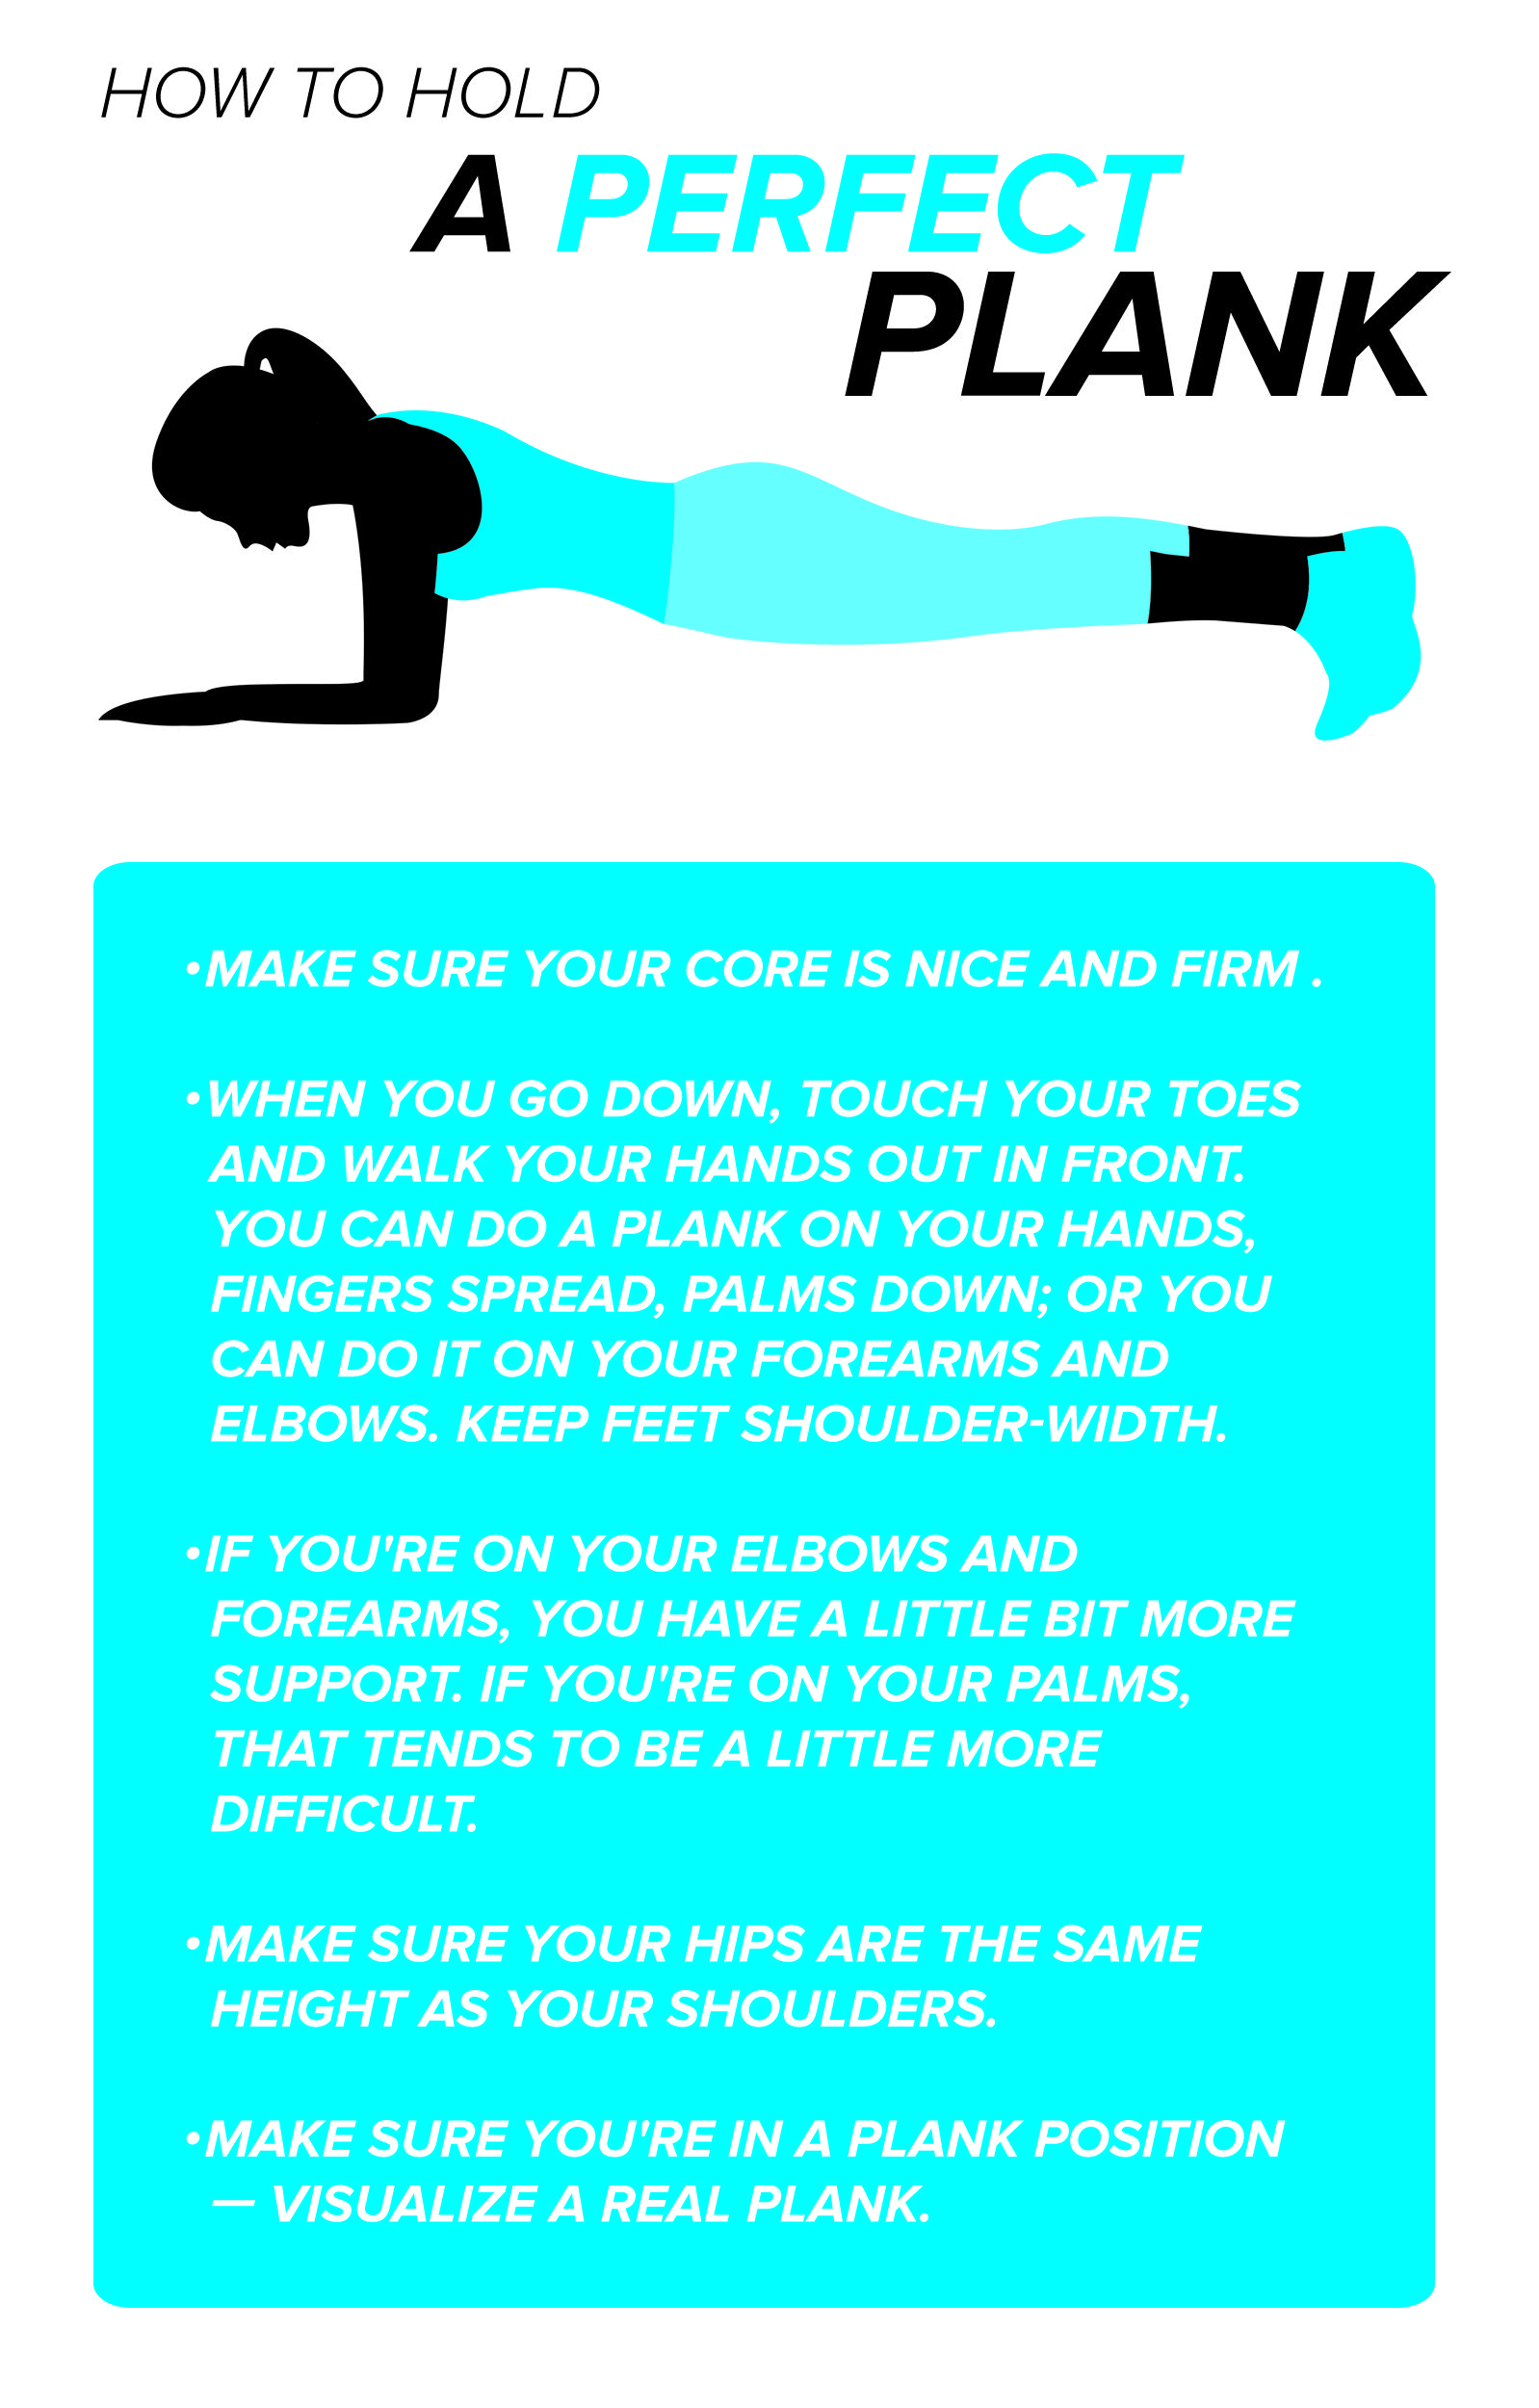 Whether you're a plank beginner or expert, these are the easy tips to keep in mind while holding the position.